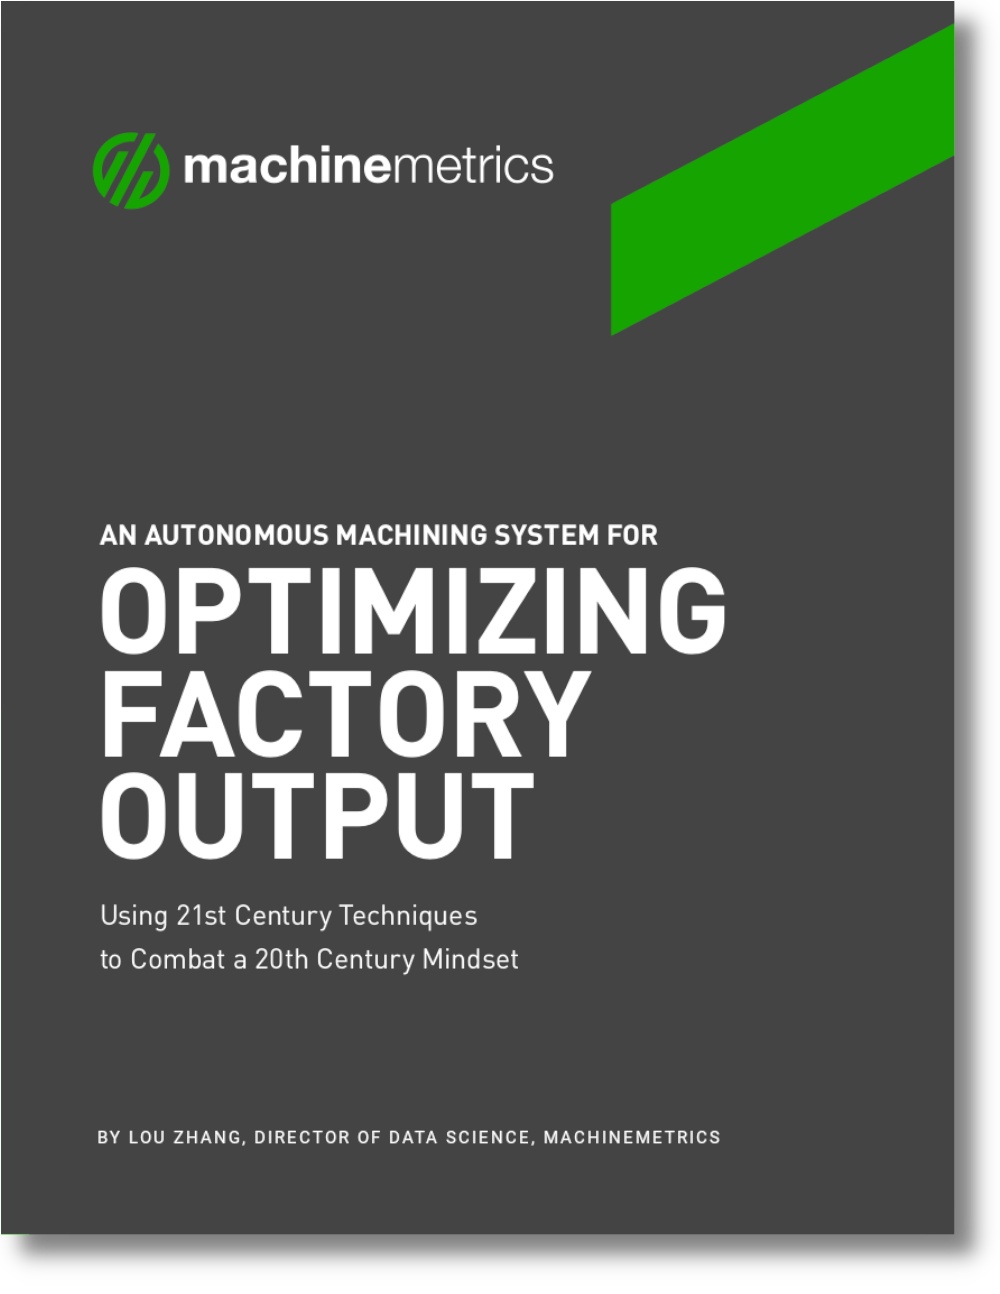 An Autonomous Machining System for Optimizing Factory Output White Paper